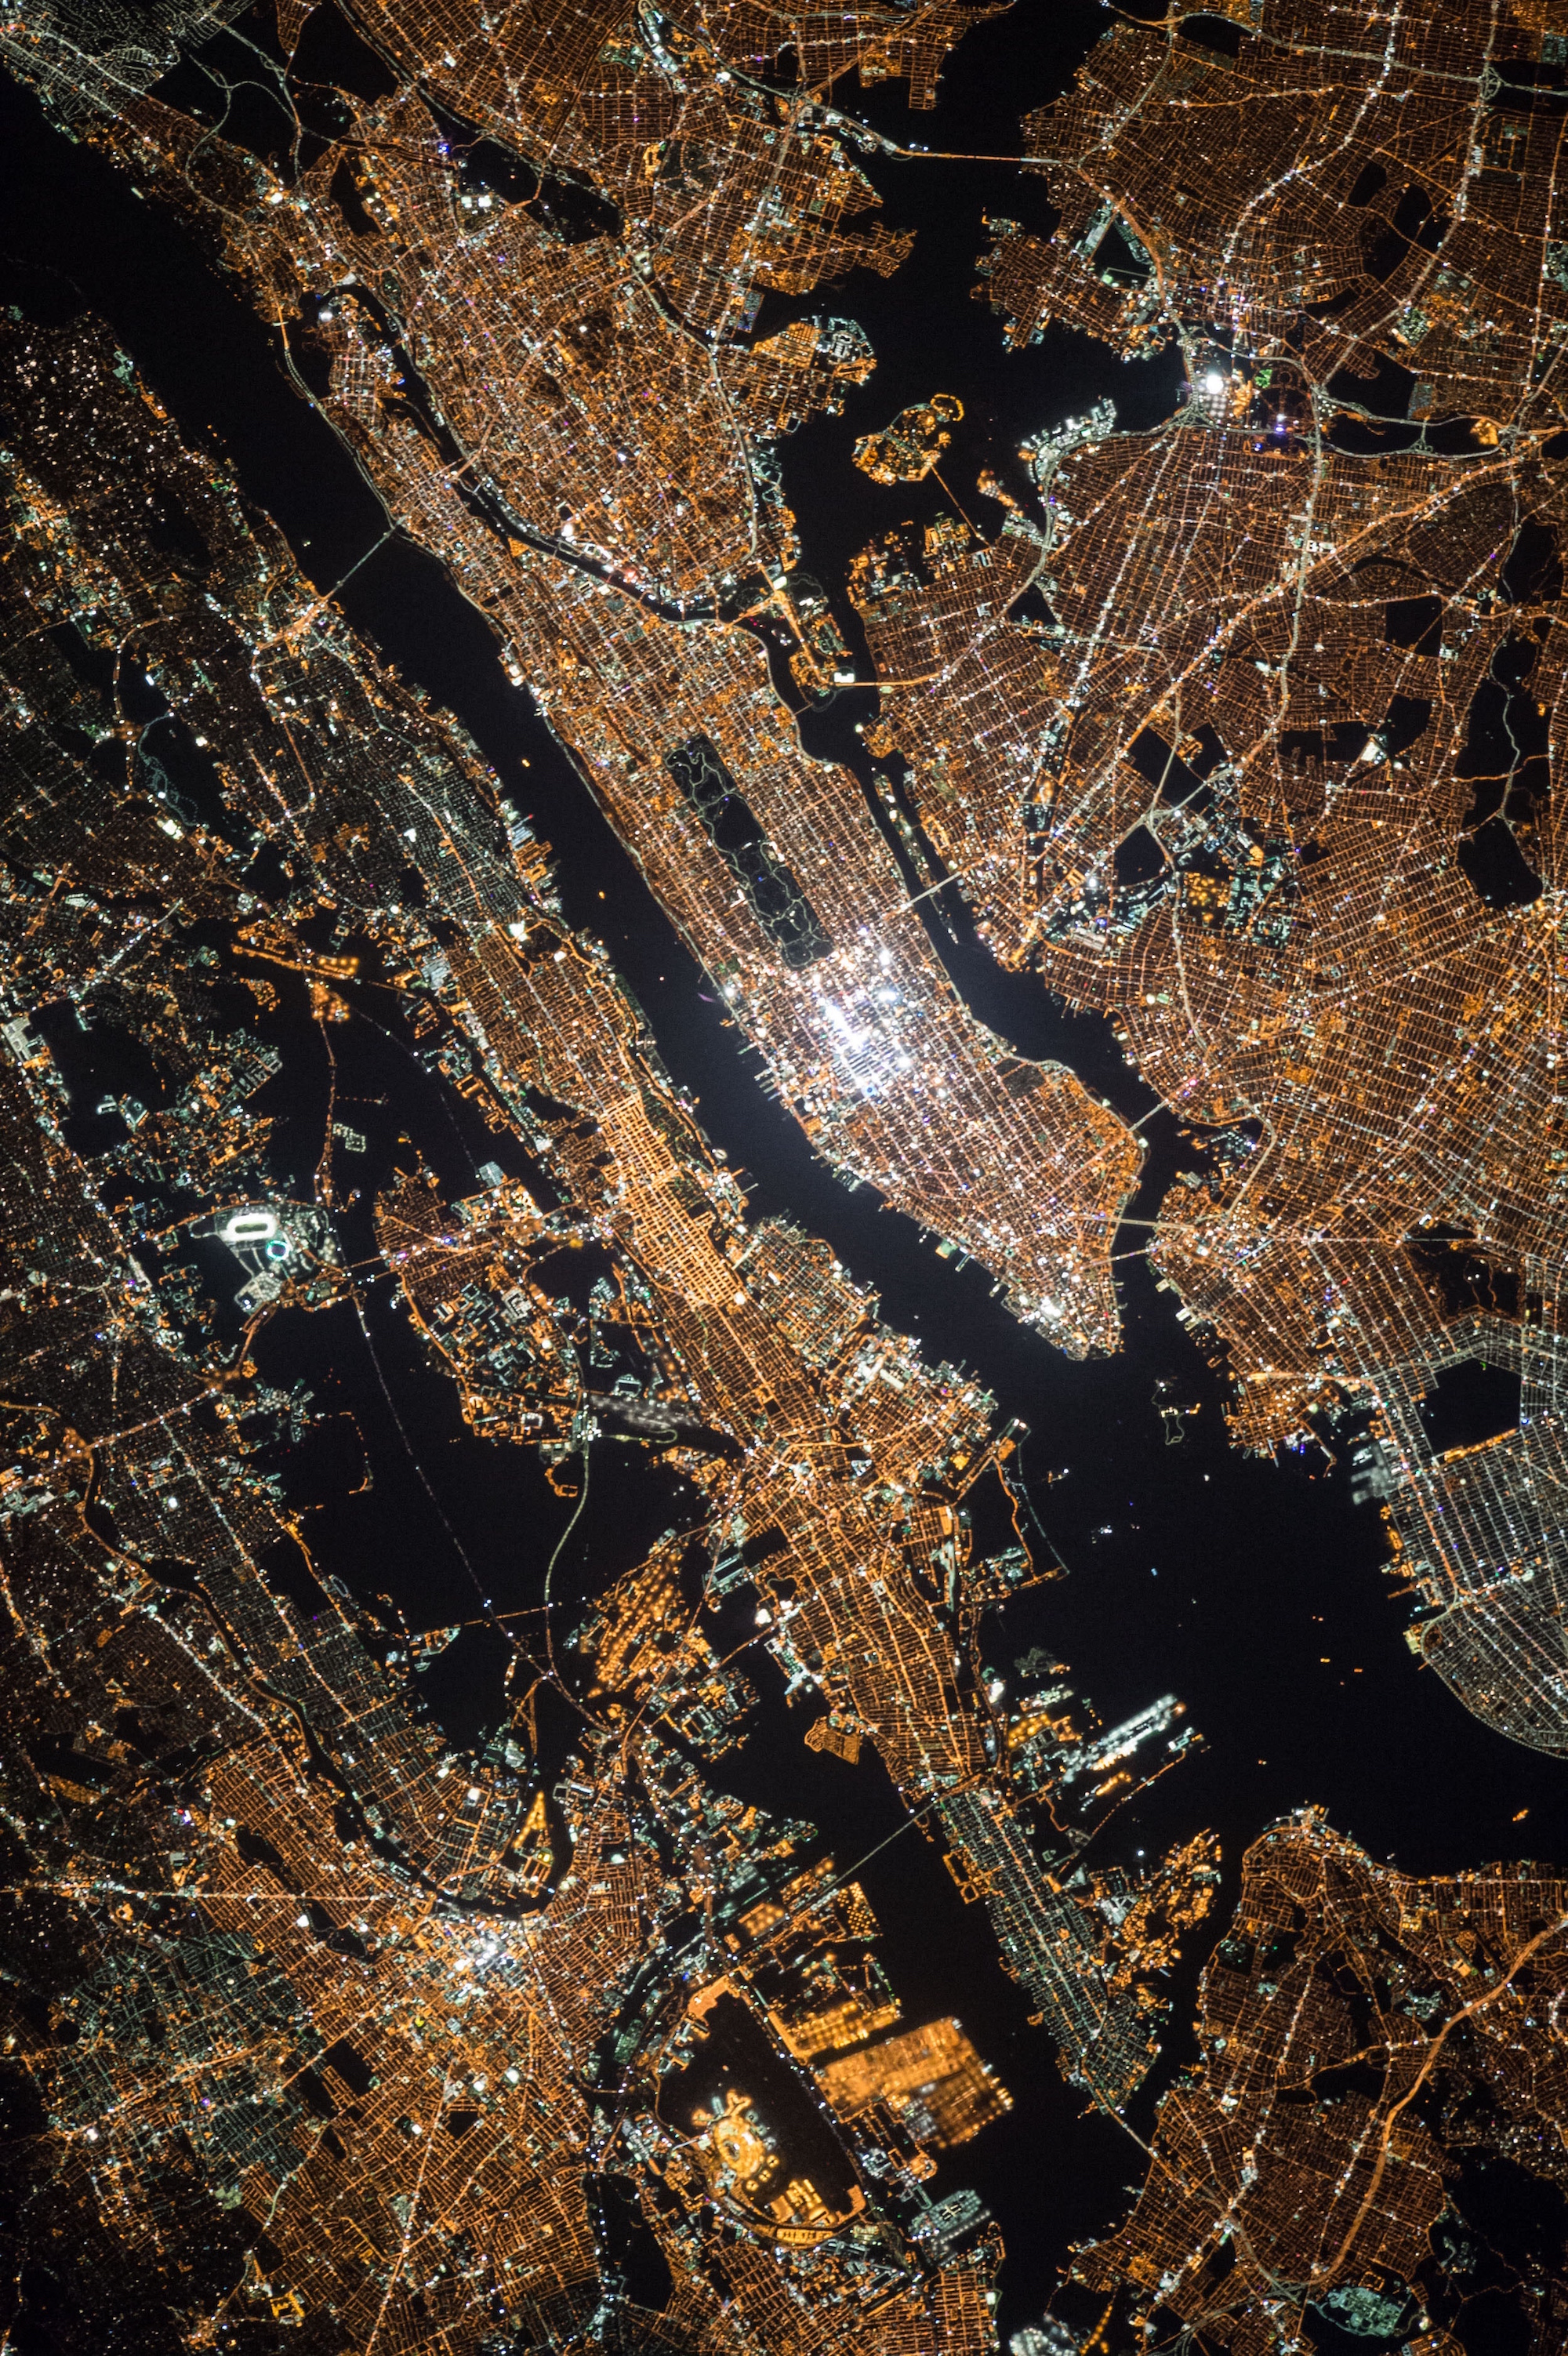 New York by night, viewed from space